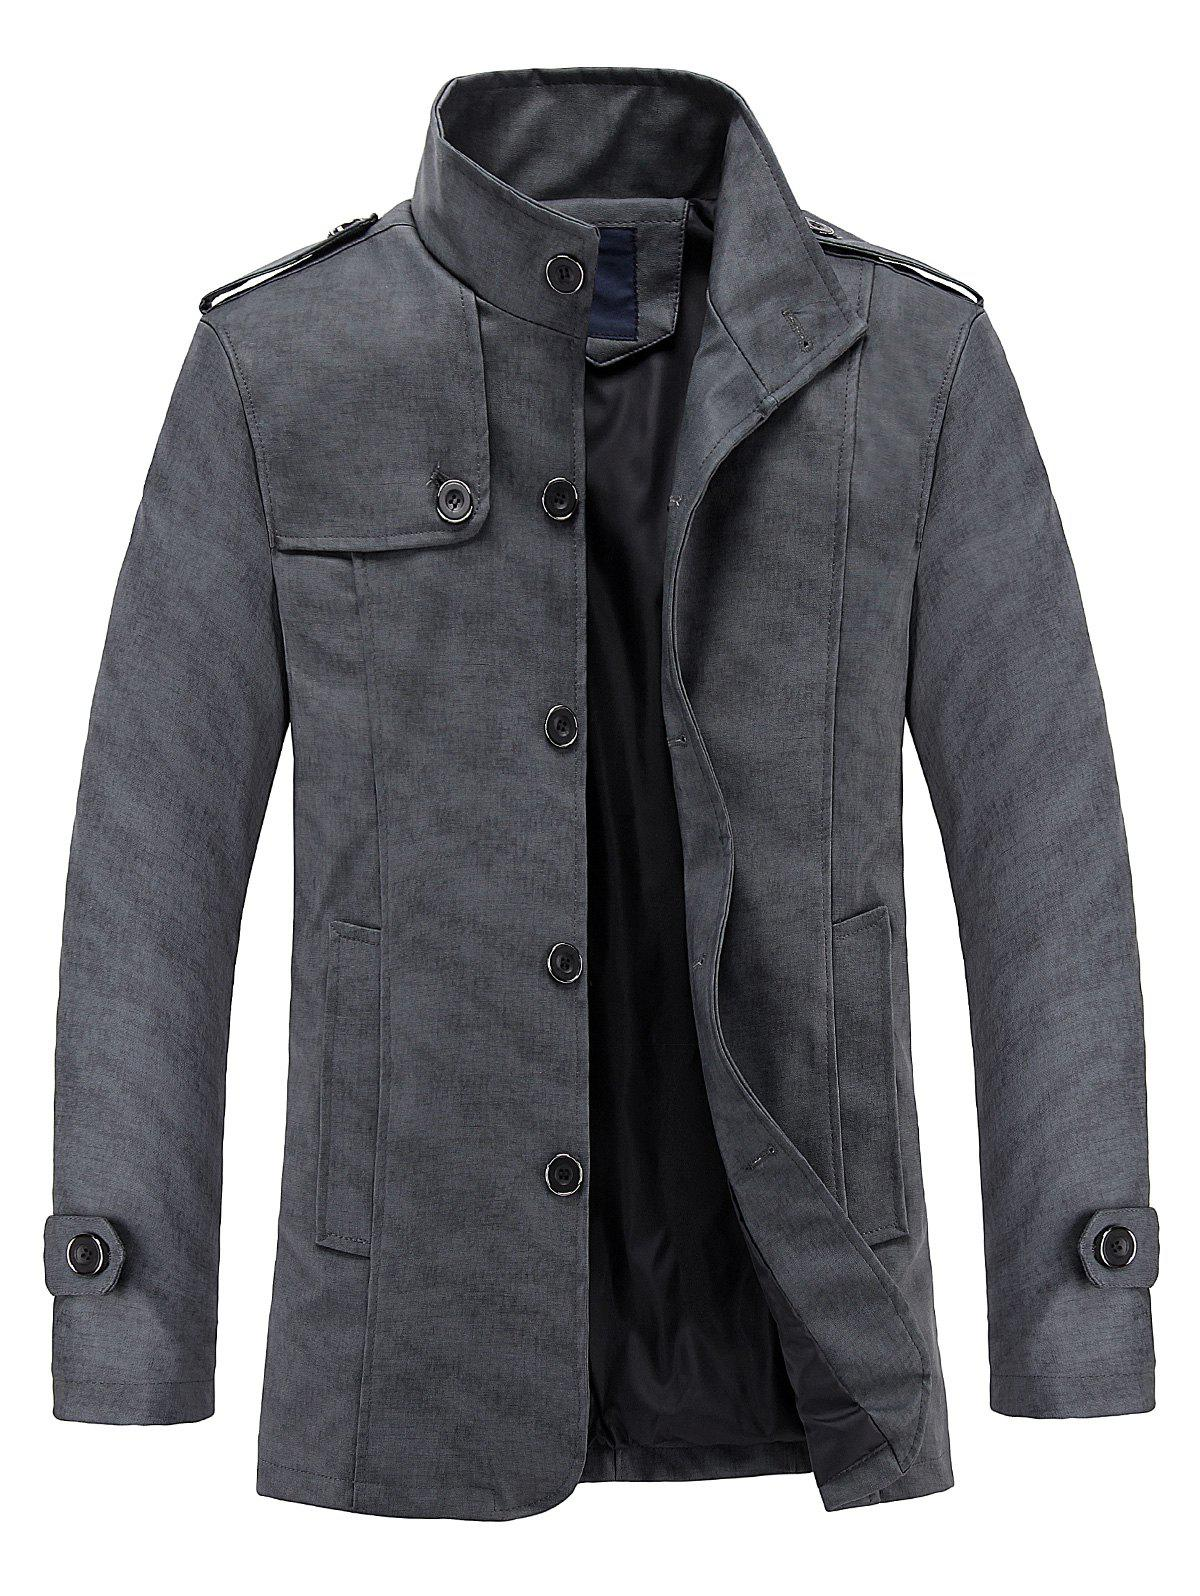 Buy Stand Collar Epaulet Design PU Leather Jacket